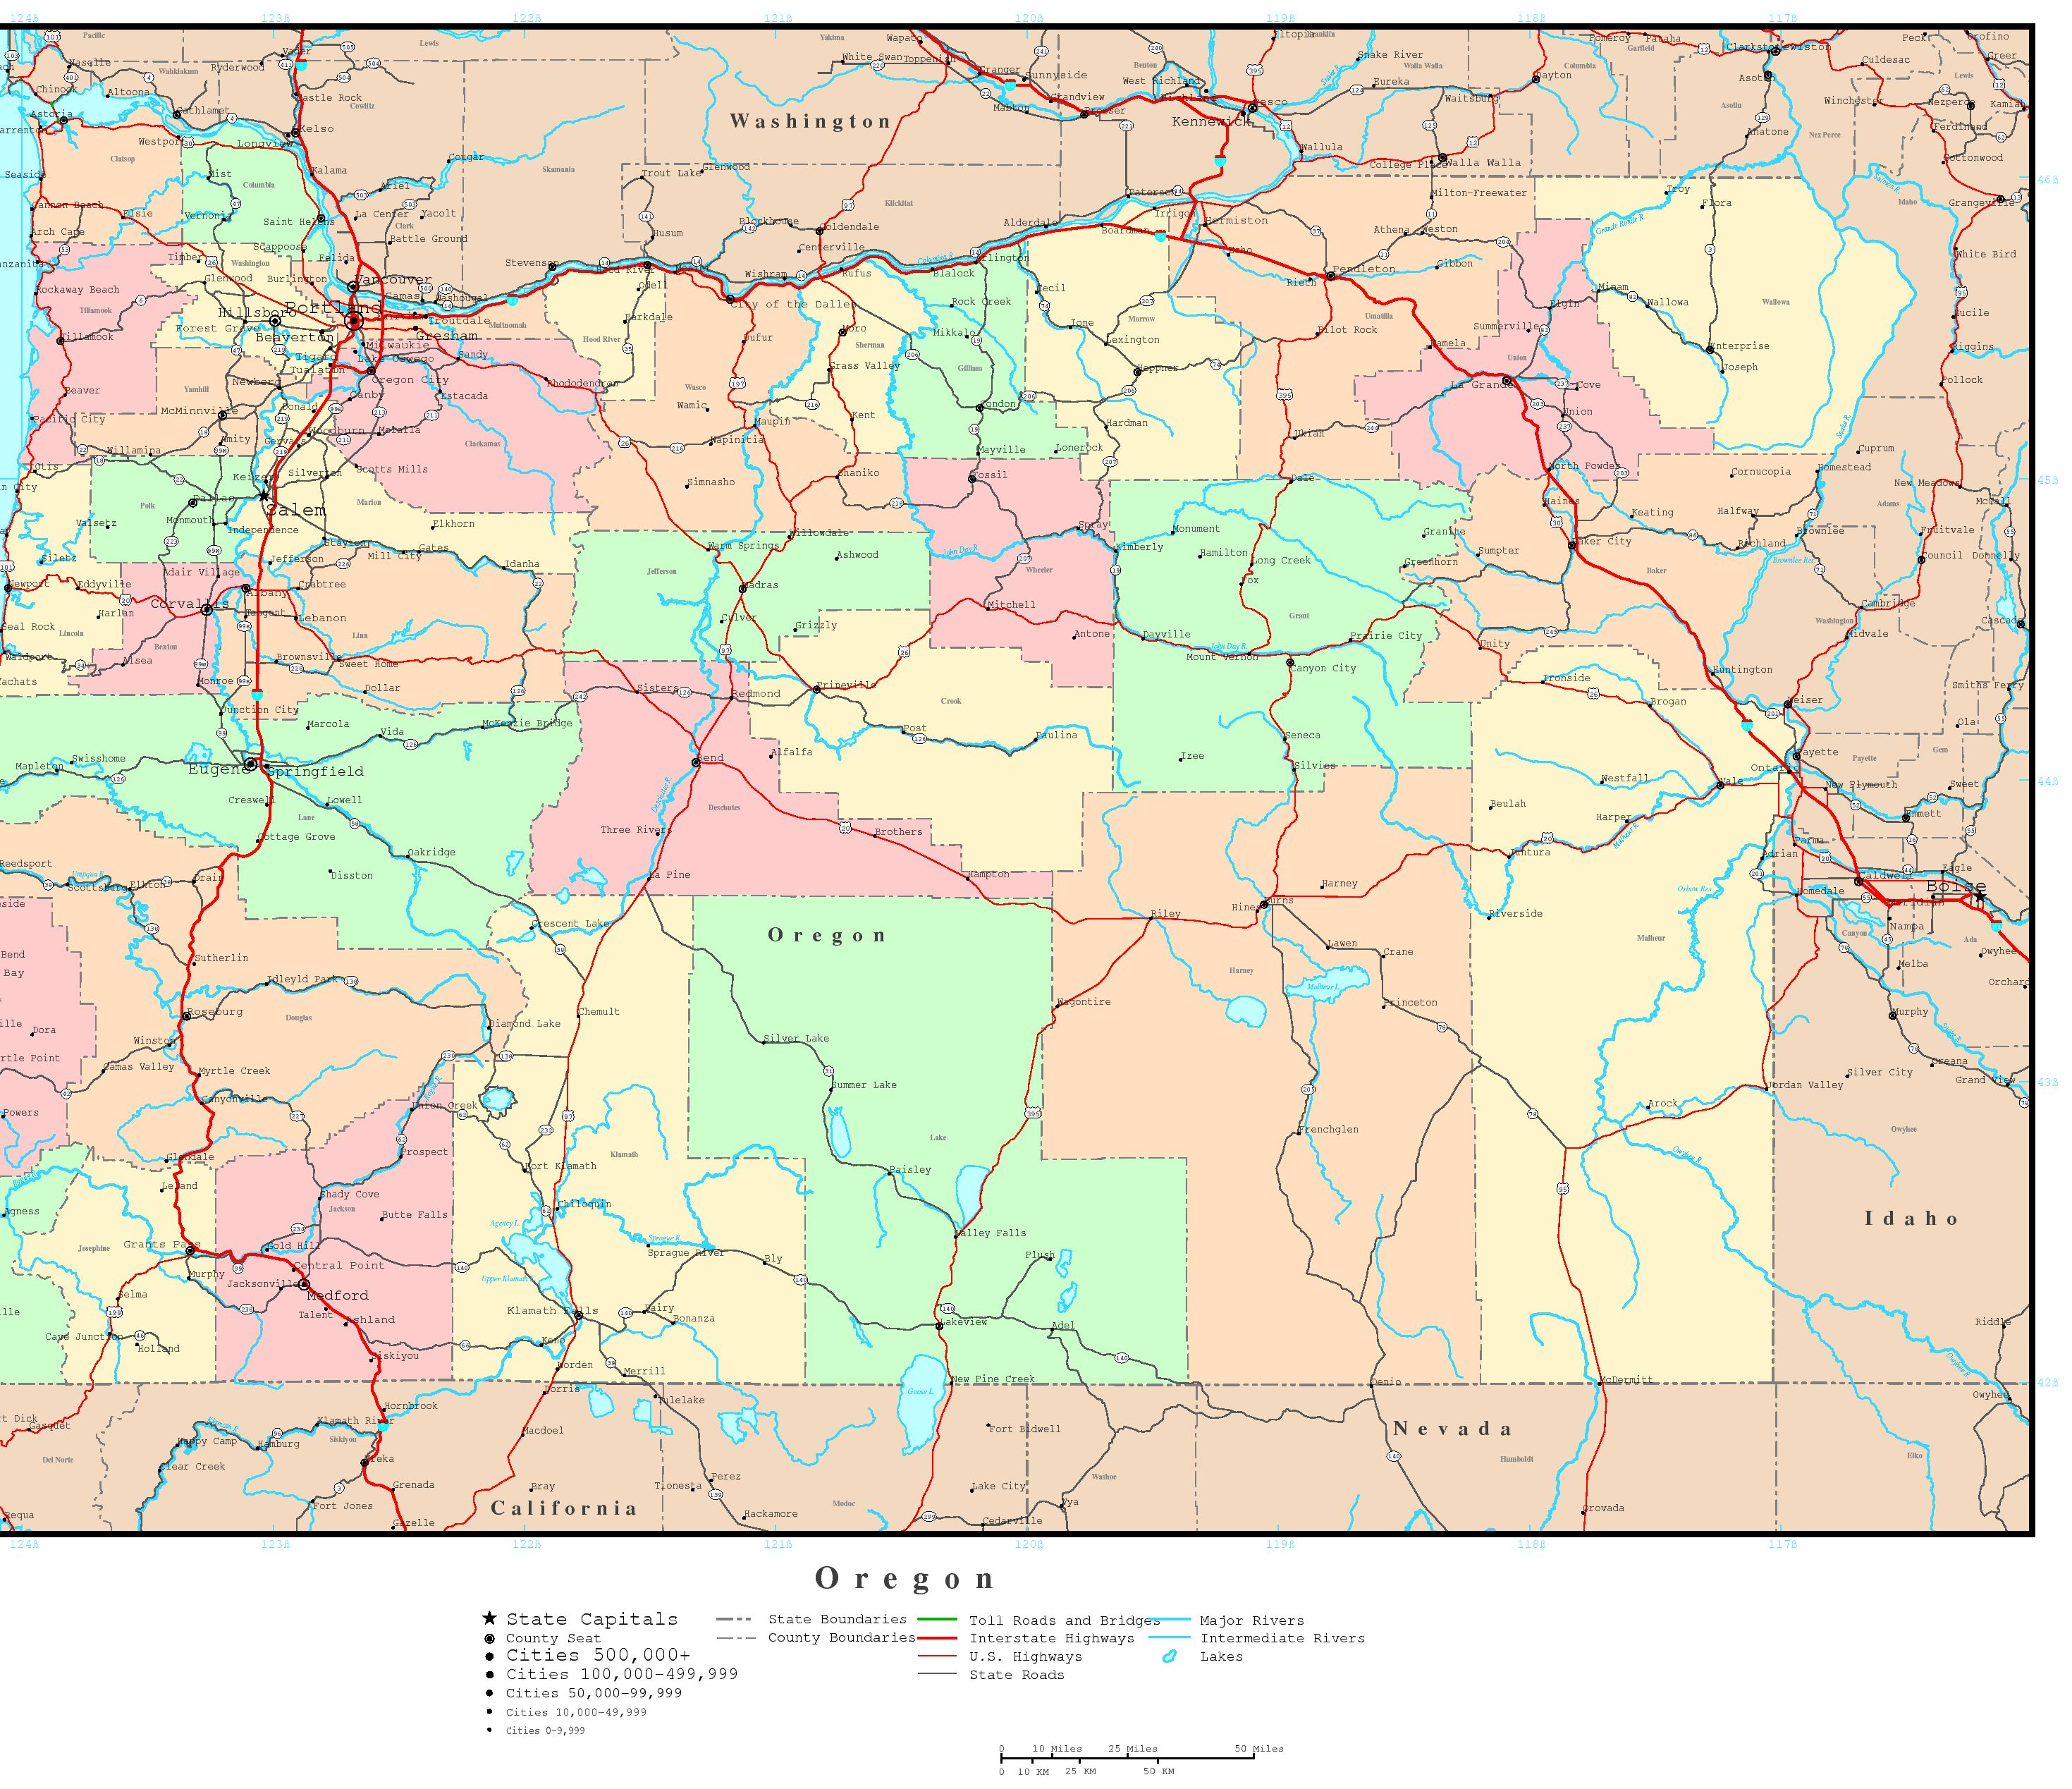 Oregon Political Map - Oregon maps with cities